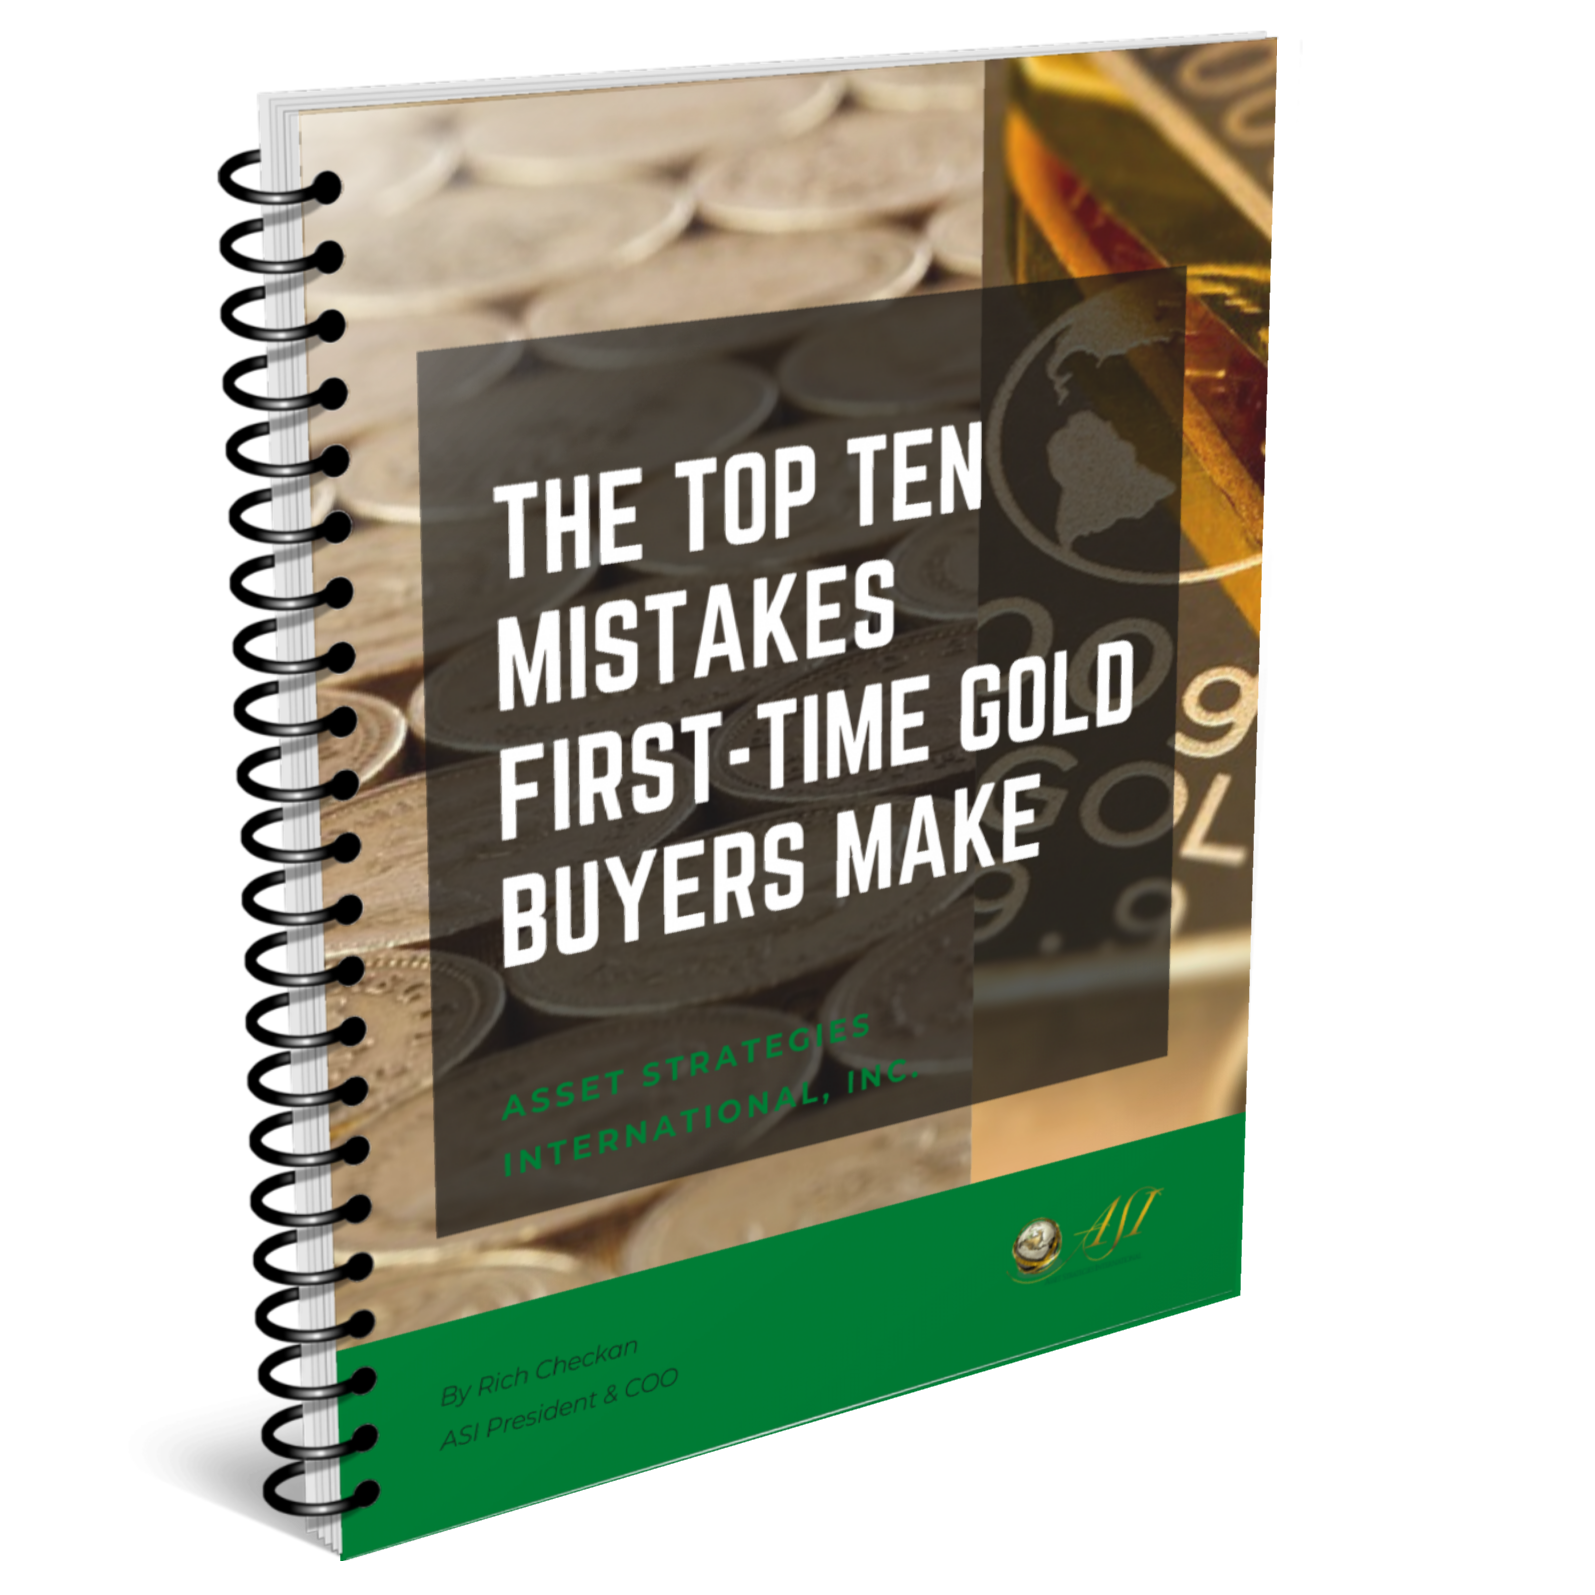 The Top Ten Mistakes First-Time Gold Buyers Make